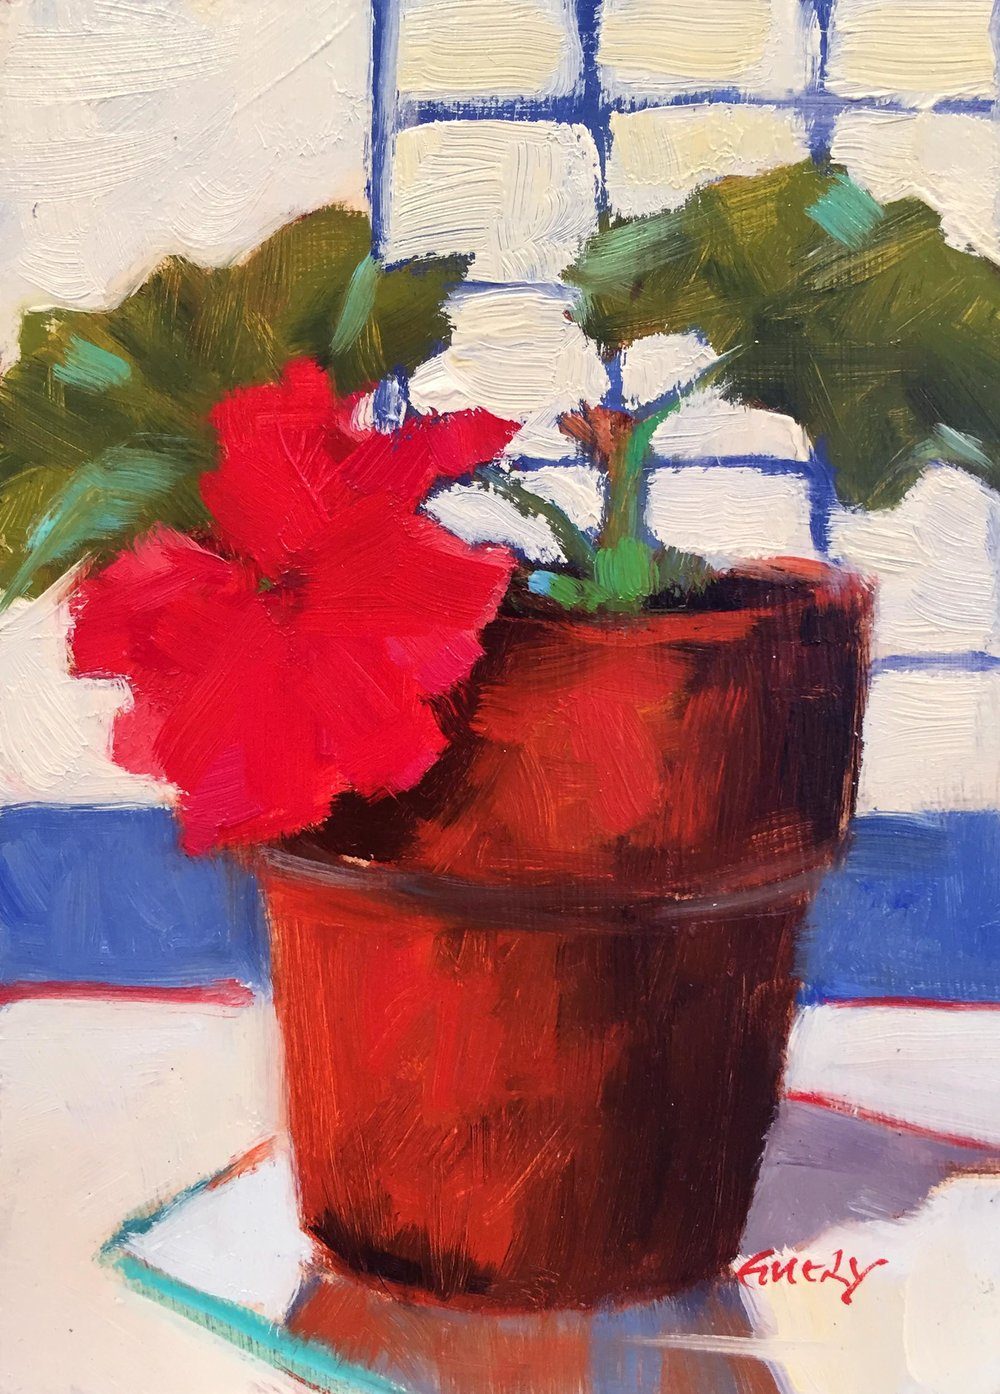 Geranium in Clay Pot